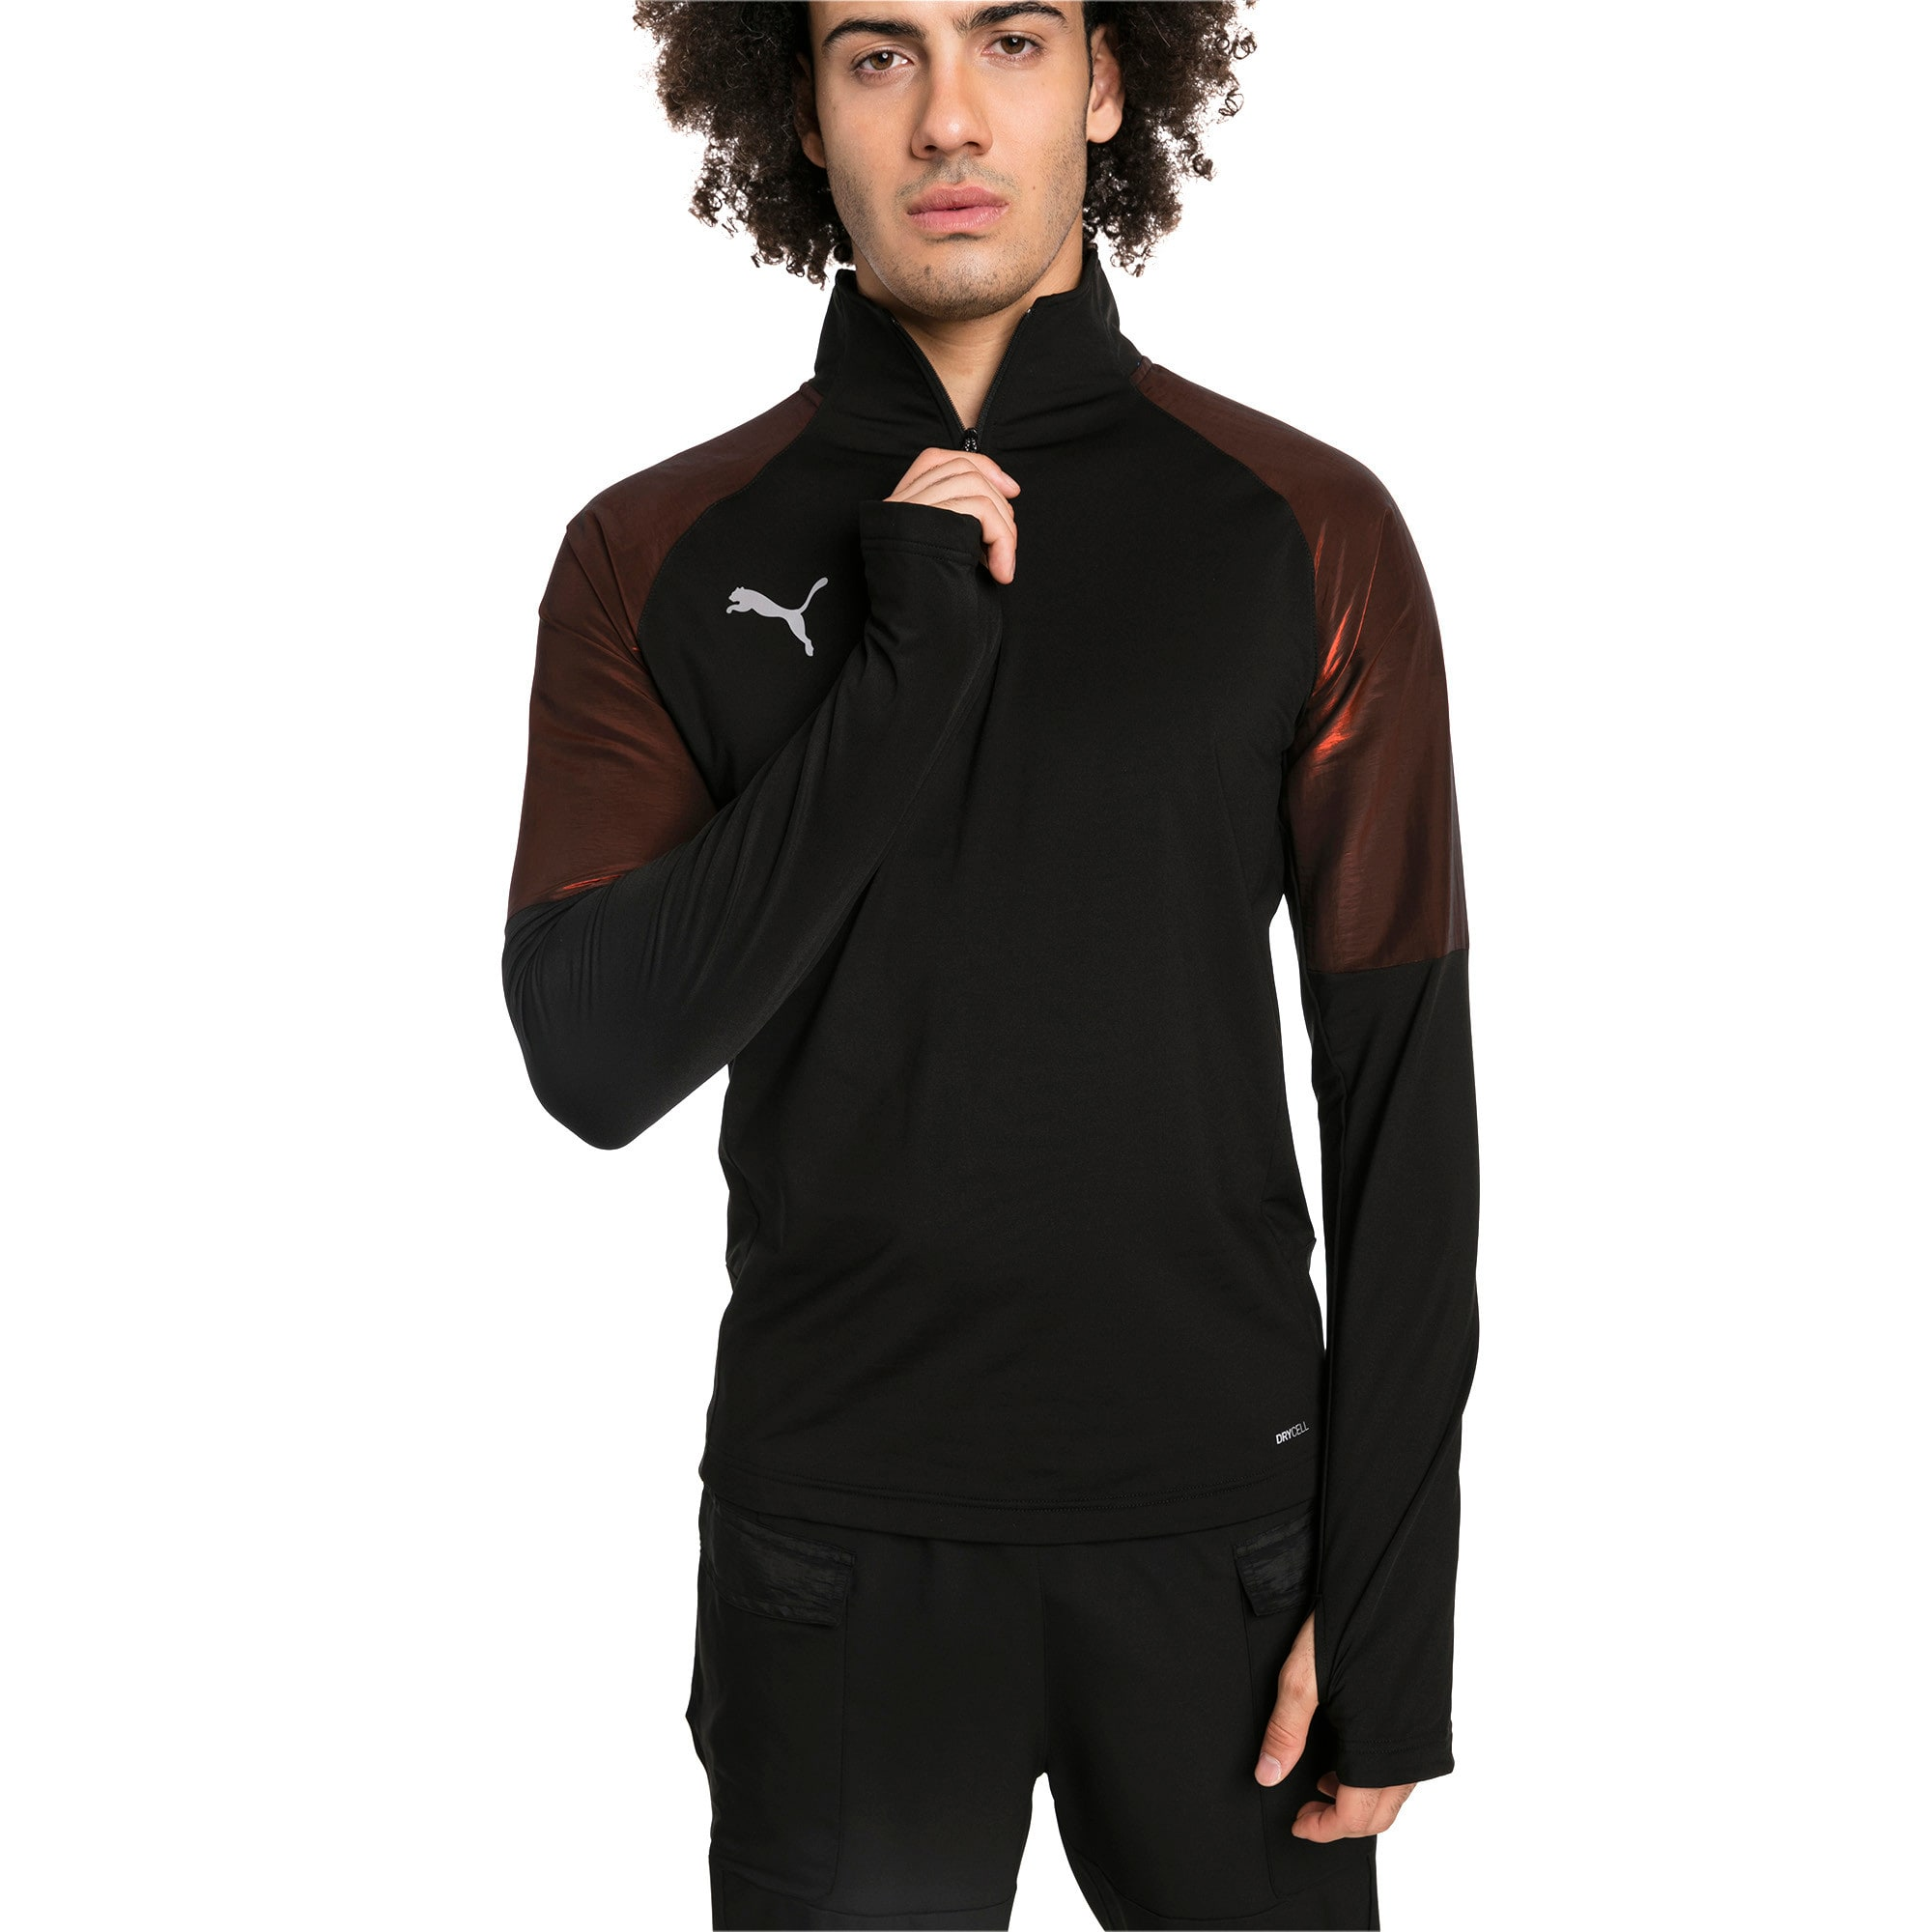 Thumbnail 1 of ftblNXT 1/4 Zip Herren Sweatshirt, Puma Black-Red Blast, medium